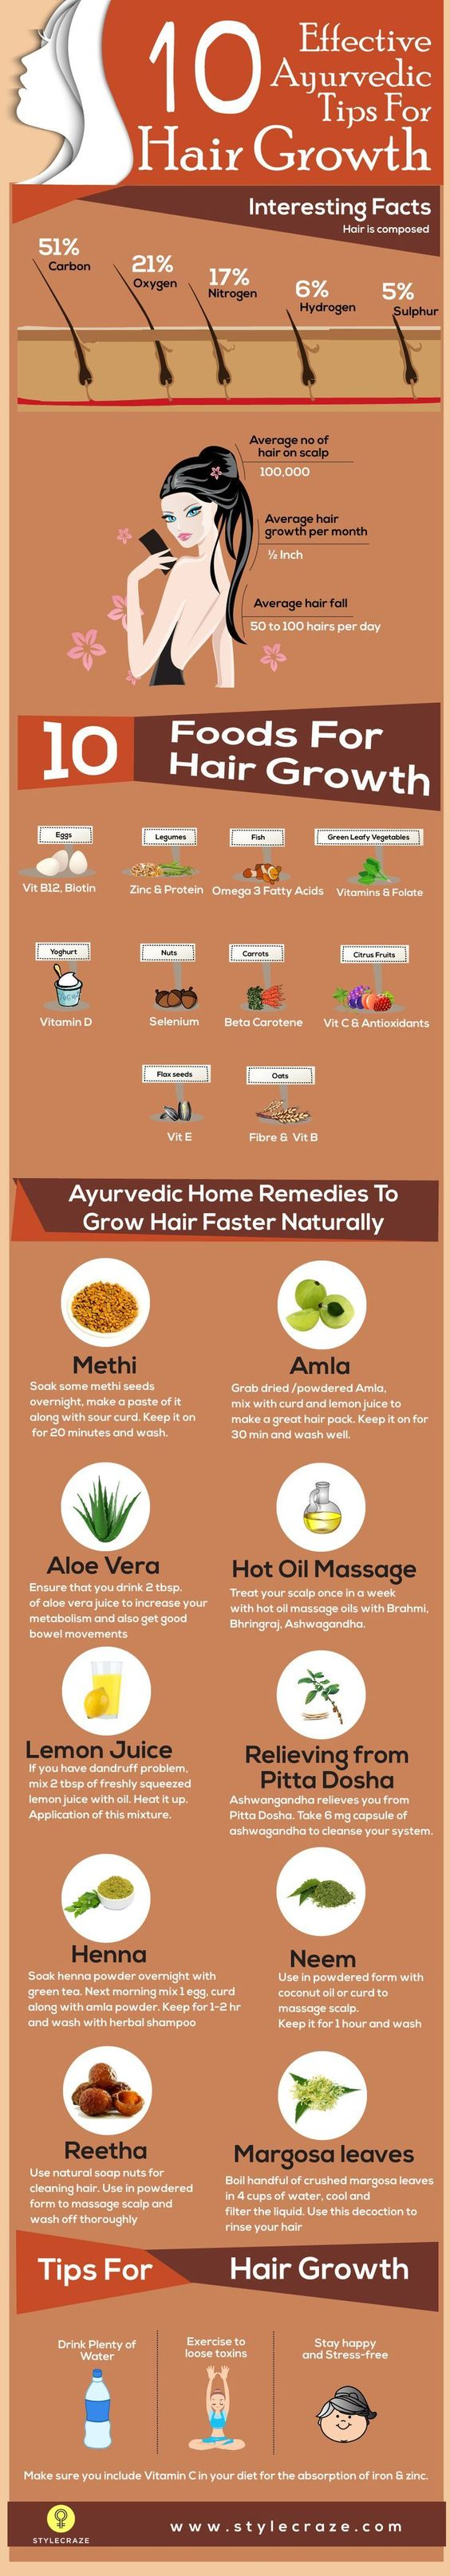 effective 10 ayurvedic tips for hair growth